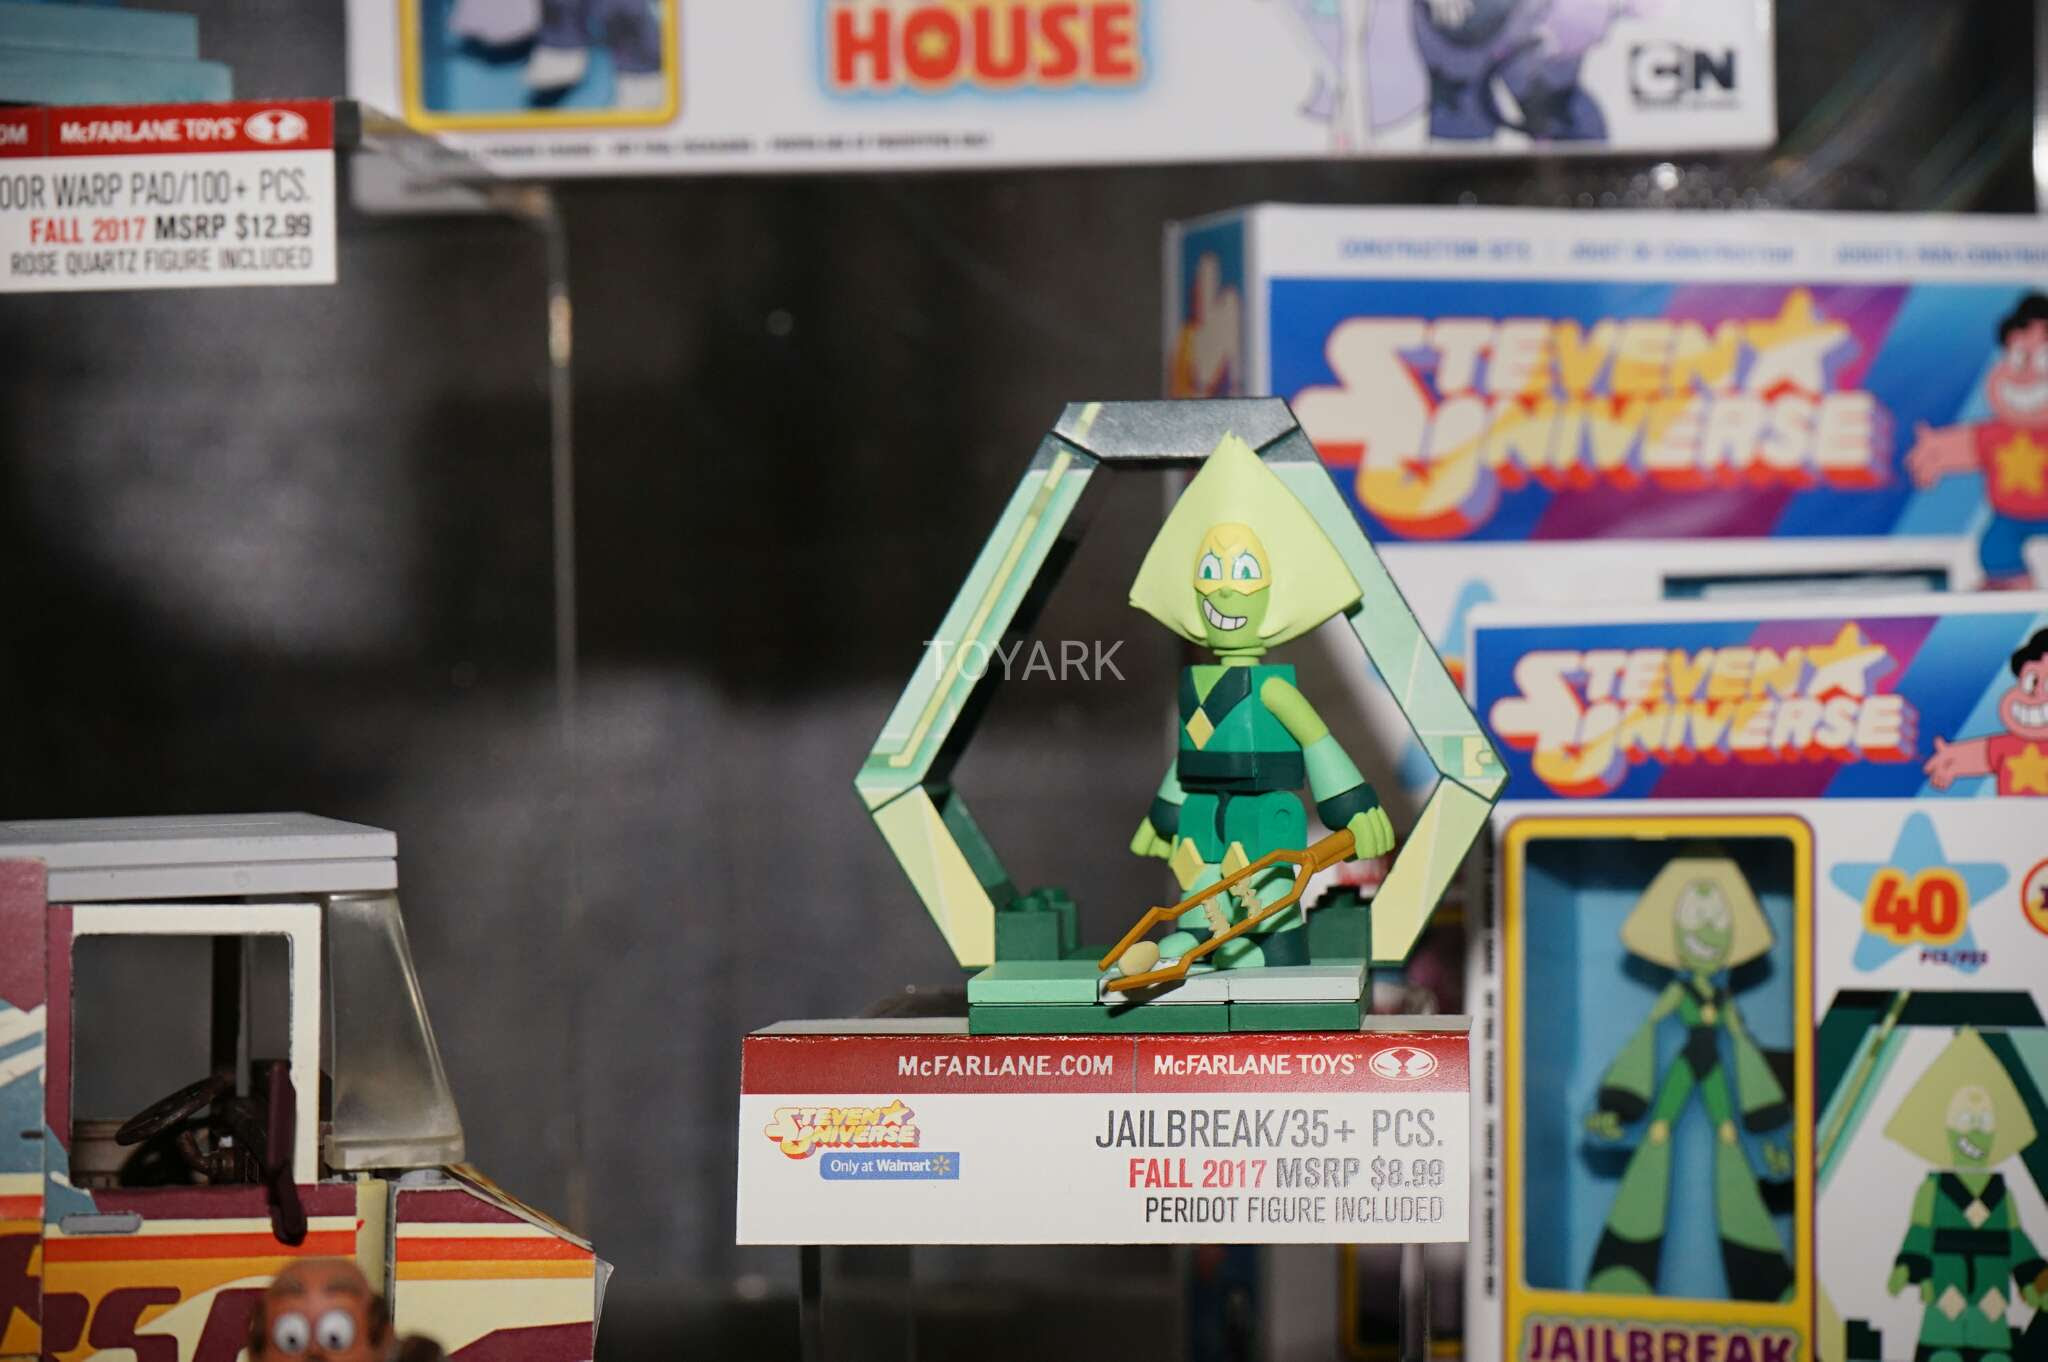 Also on display at Toy Fair 2017 was a slew of McFarlane Toys Building Sets. They had new items in existing licenses and some new licenses announced too! Included are: Five Night's at Freddy's South Park Steven Universe Rick and Morty You'll also notice some newly stylized figures with those sets. McFarlane adjusted some of the pieces to be more unique and allow them to look more accurate to their cartoon counterparts. See the photos after the jump.